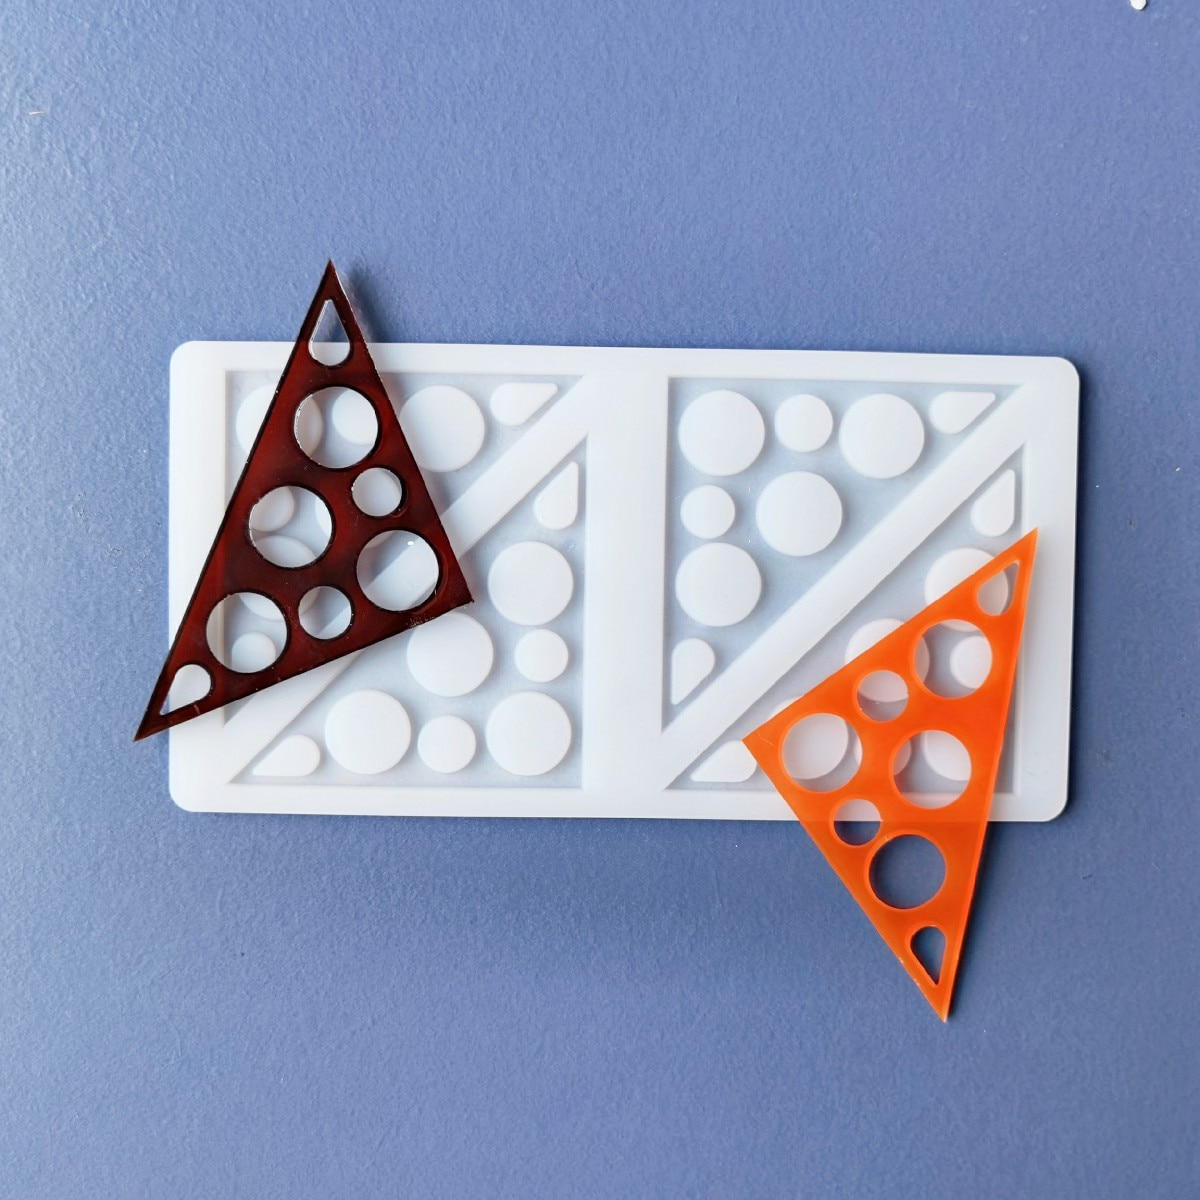 Hot DIY 3D Square Triangle Circle Silicone Mold Cake Decorating Tools Cupcake Chocolate Mould Decor Muffin Pan Baking Stencil 1pc round silicone cake mold 3d chocolate muffin cupcake candy mold diy fondant cake decorating tools